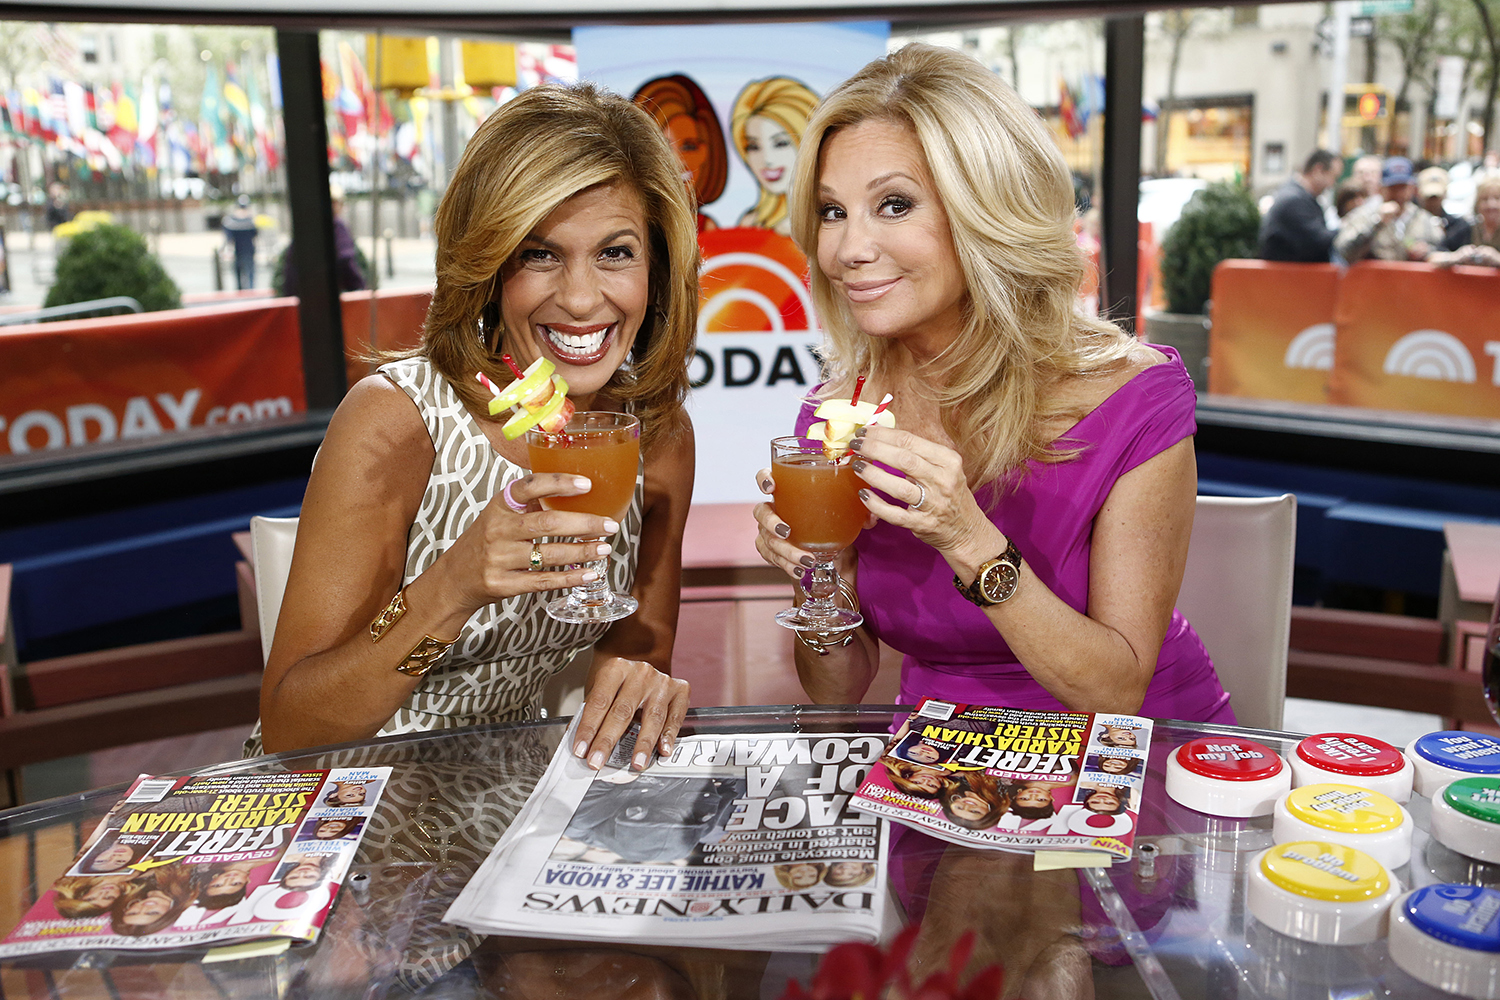 Kathie lee and hoda to host star studded new year 39 s eve - Nbc today show kathie lee and hoda ...